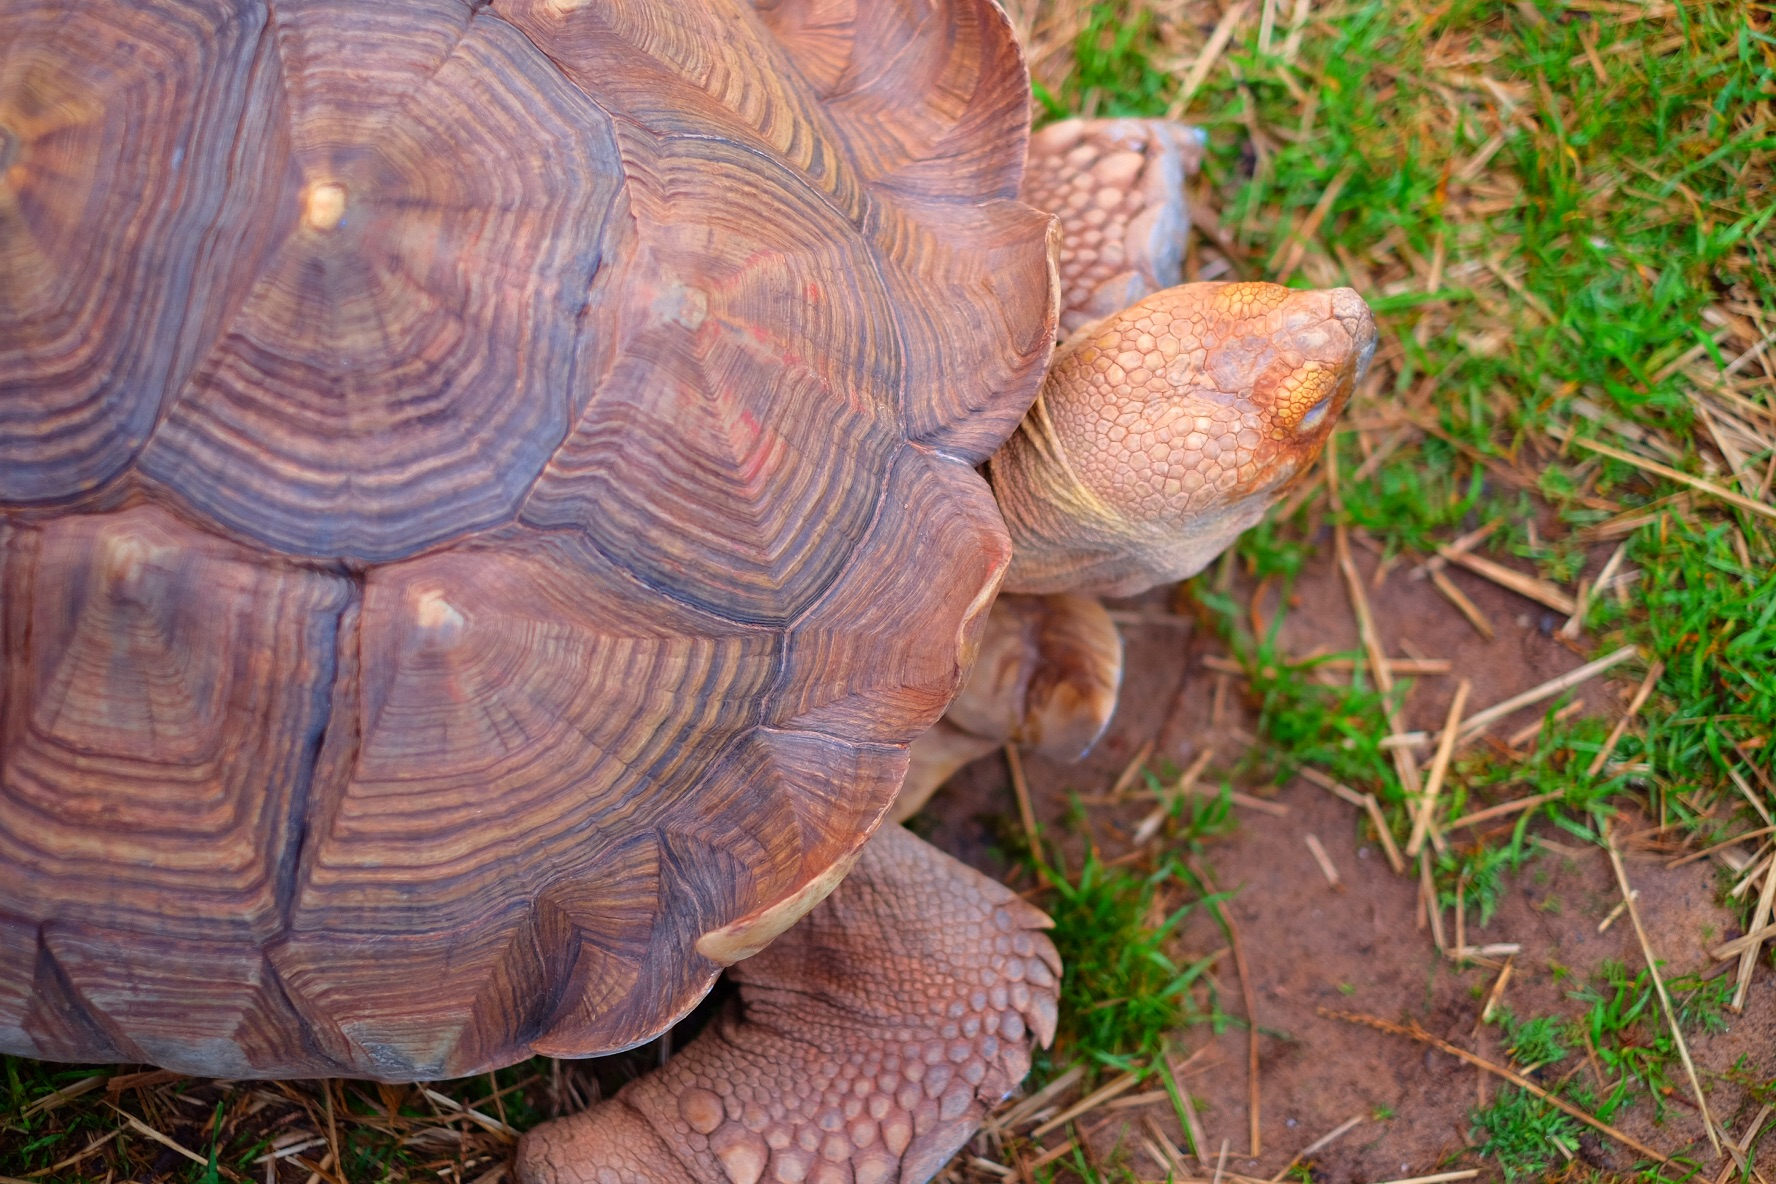 African Tortise 120 years old!